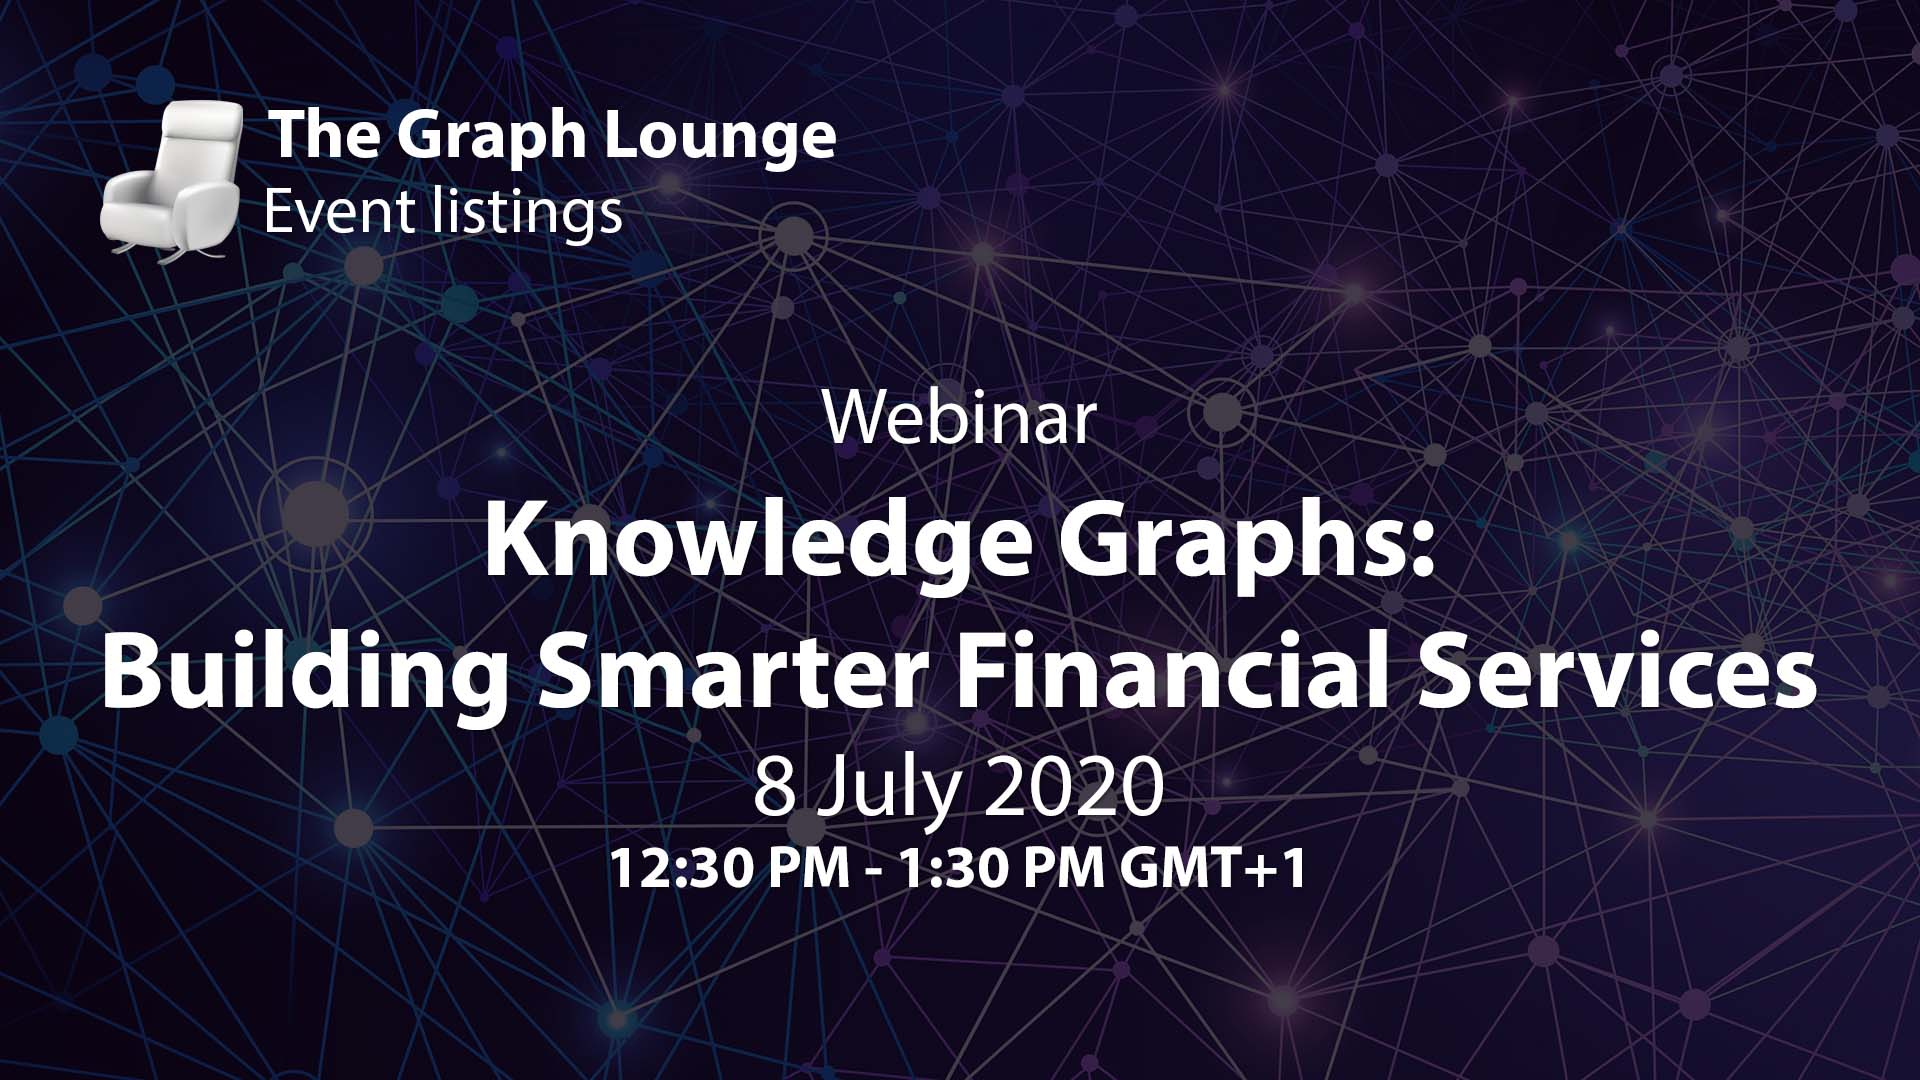 Knowledge Graphs: Building Smarter Financial Services